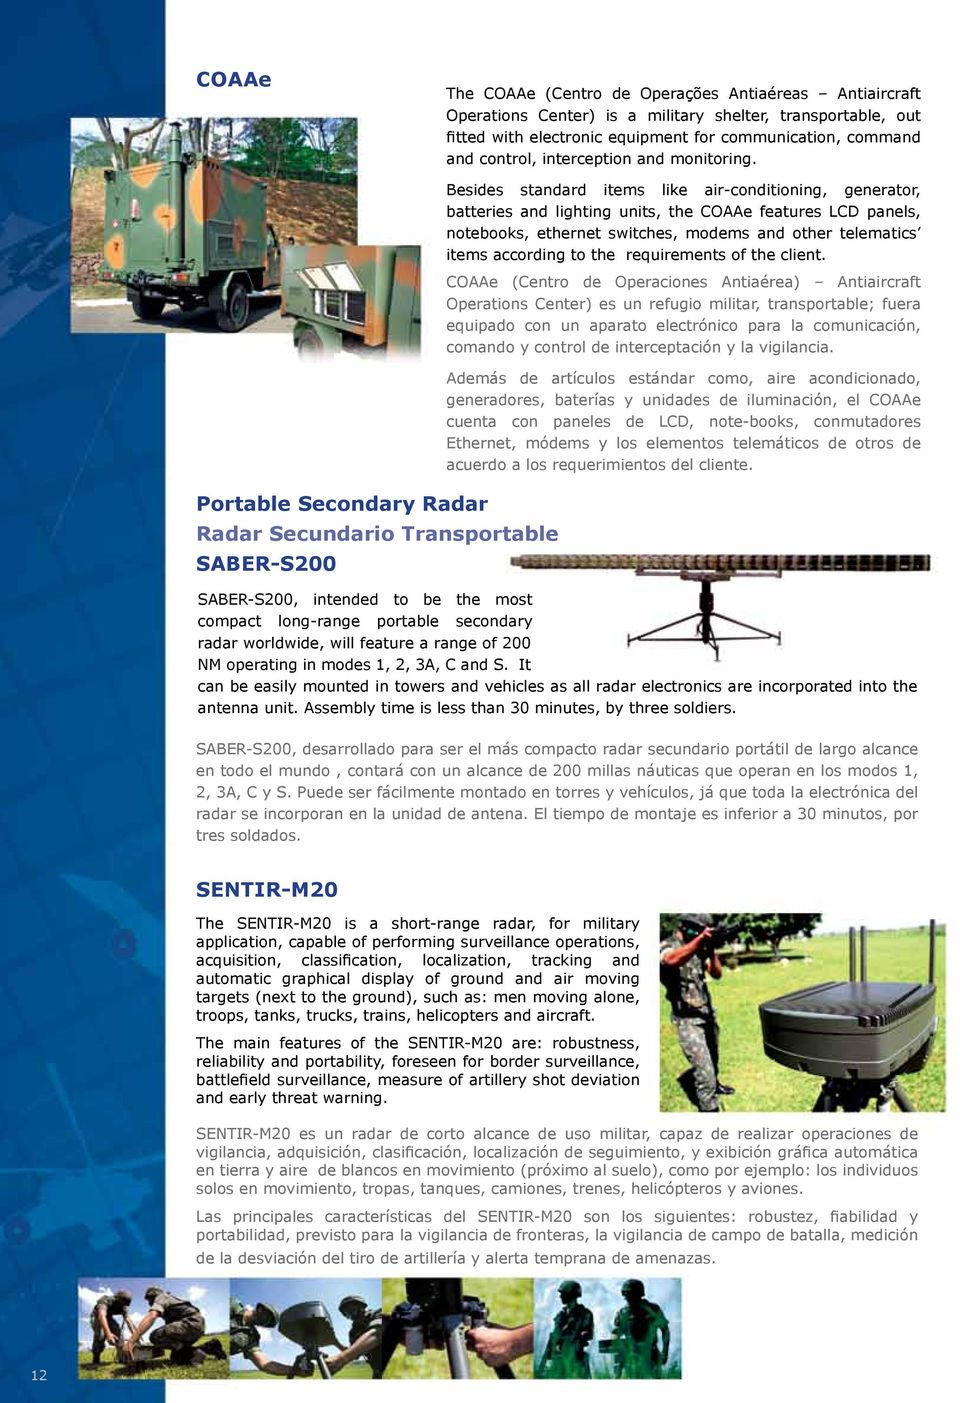 Portable Secondary Radar Radar Secundario Transportable SABER-S200 Besides standard items like air-conditioning, generator, batteries and lighting units, the COAAe features LCD panels, notebooks,